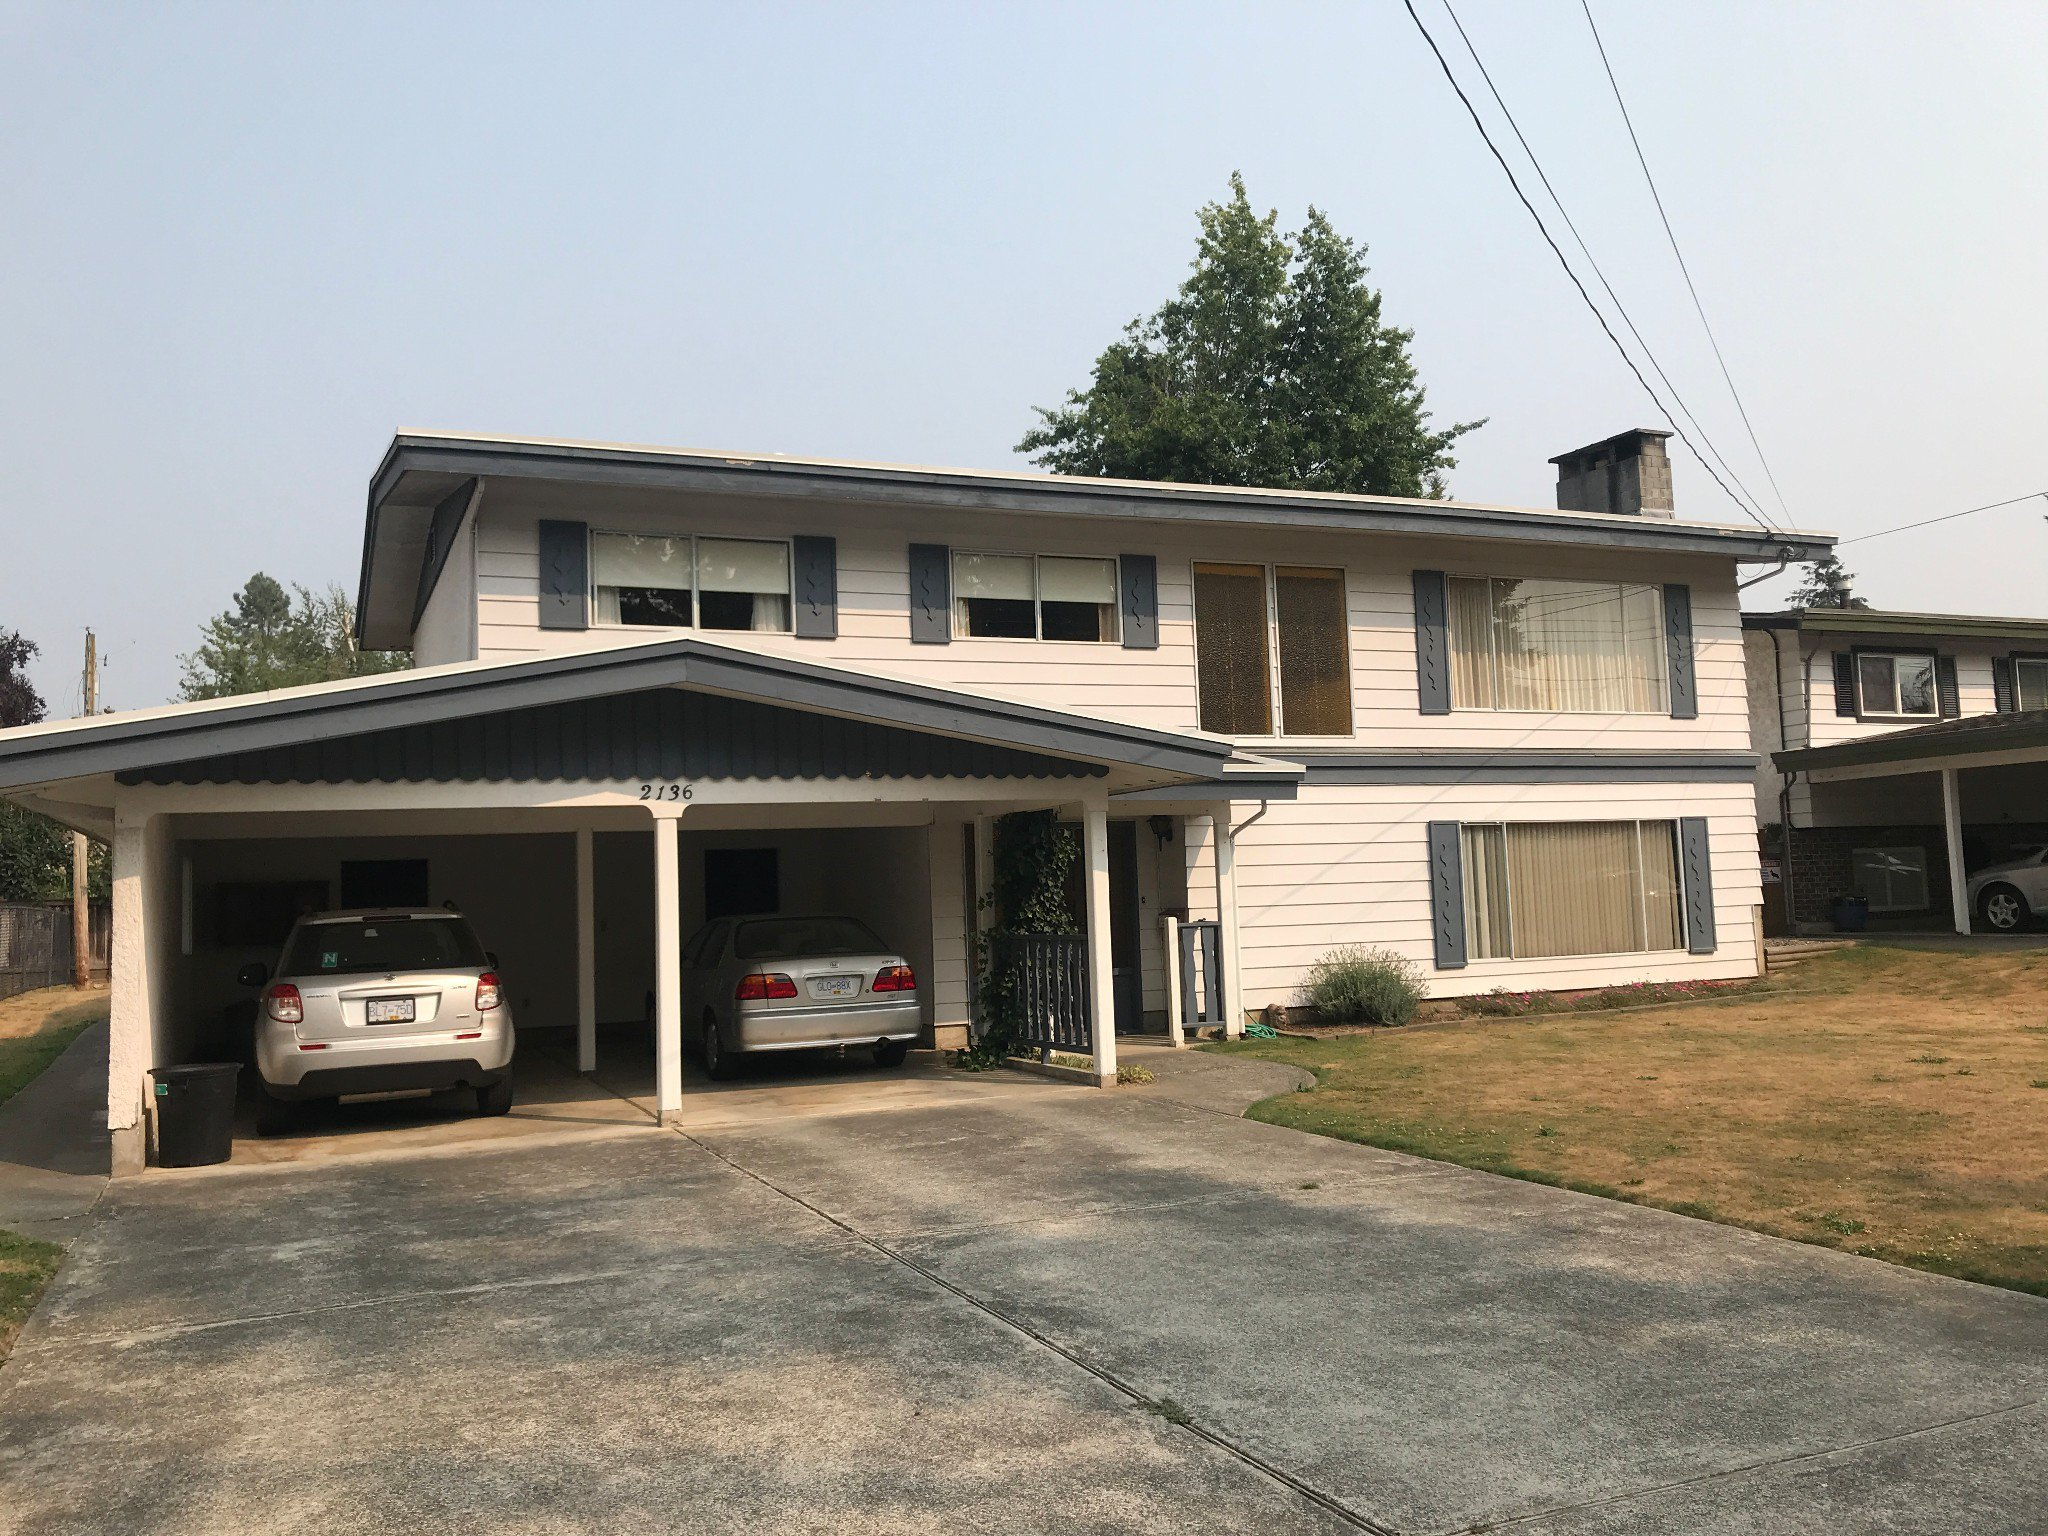 Photo 1: Photos: 2136 Topaz St. in Abbotsford: Abbotsford West House for rent